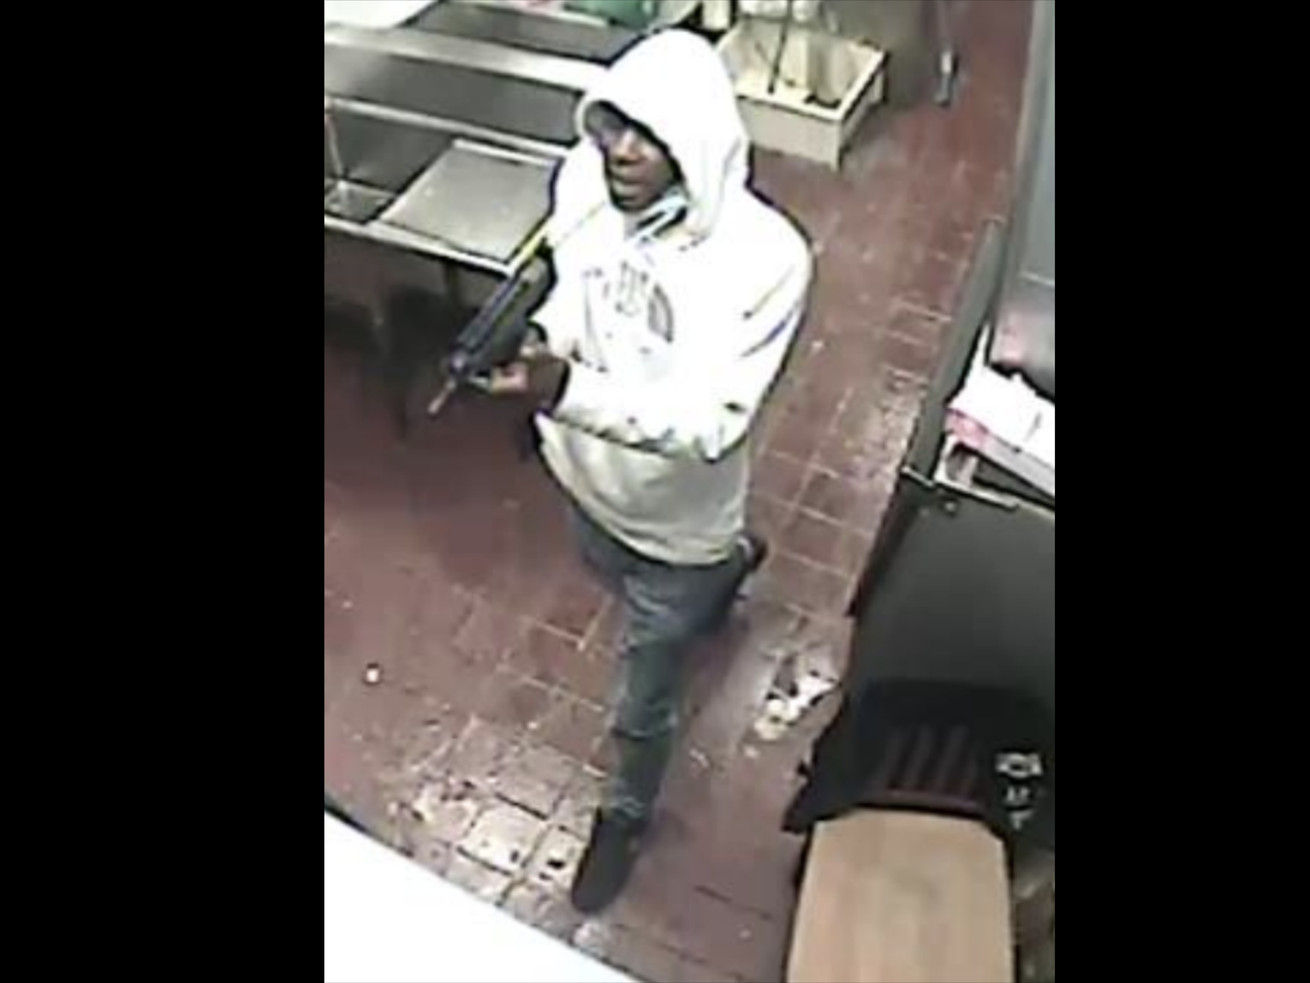 Police seeking man wanted in connection with armed robbery in Bronzeville